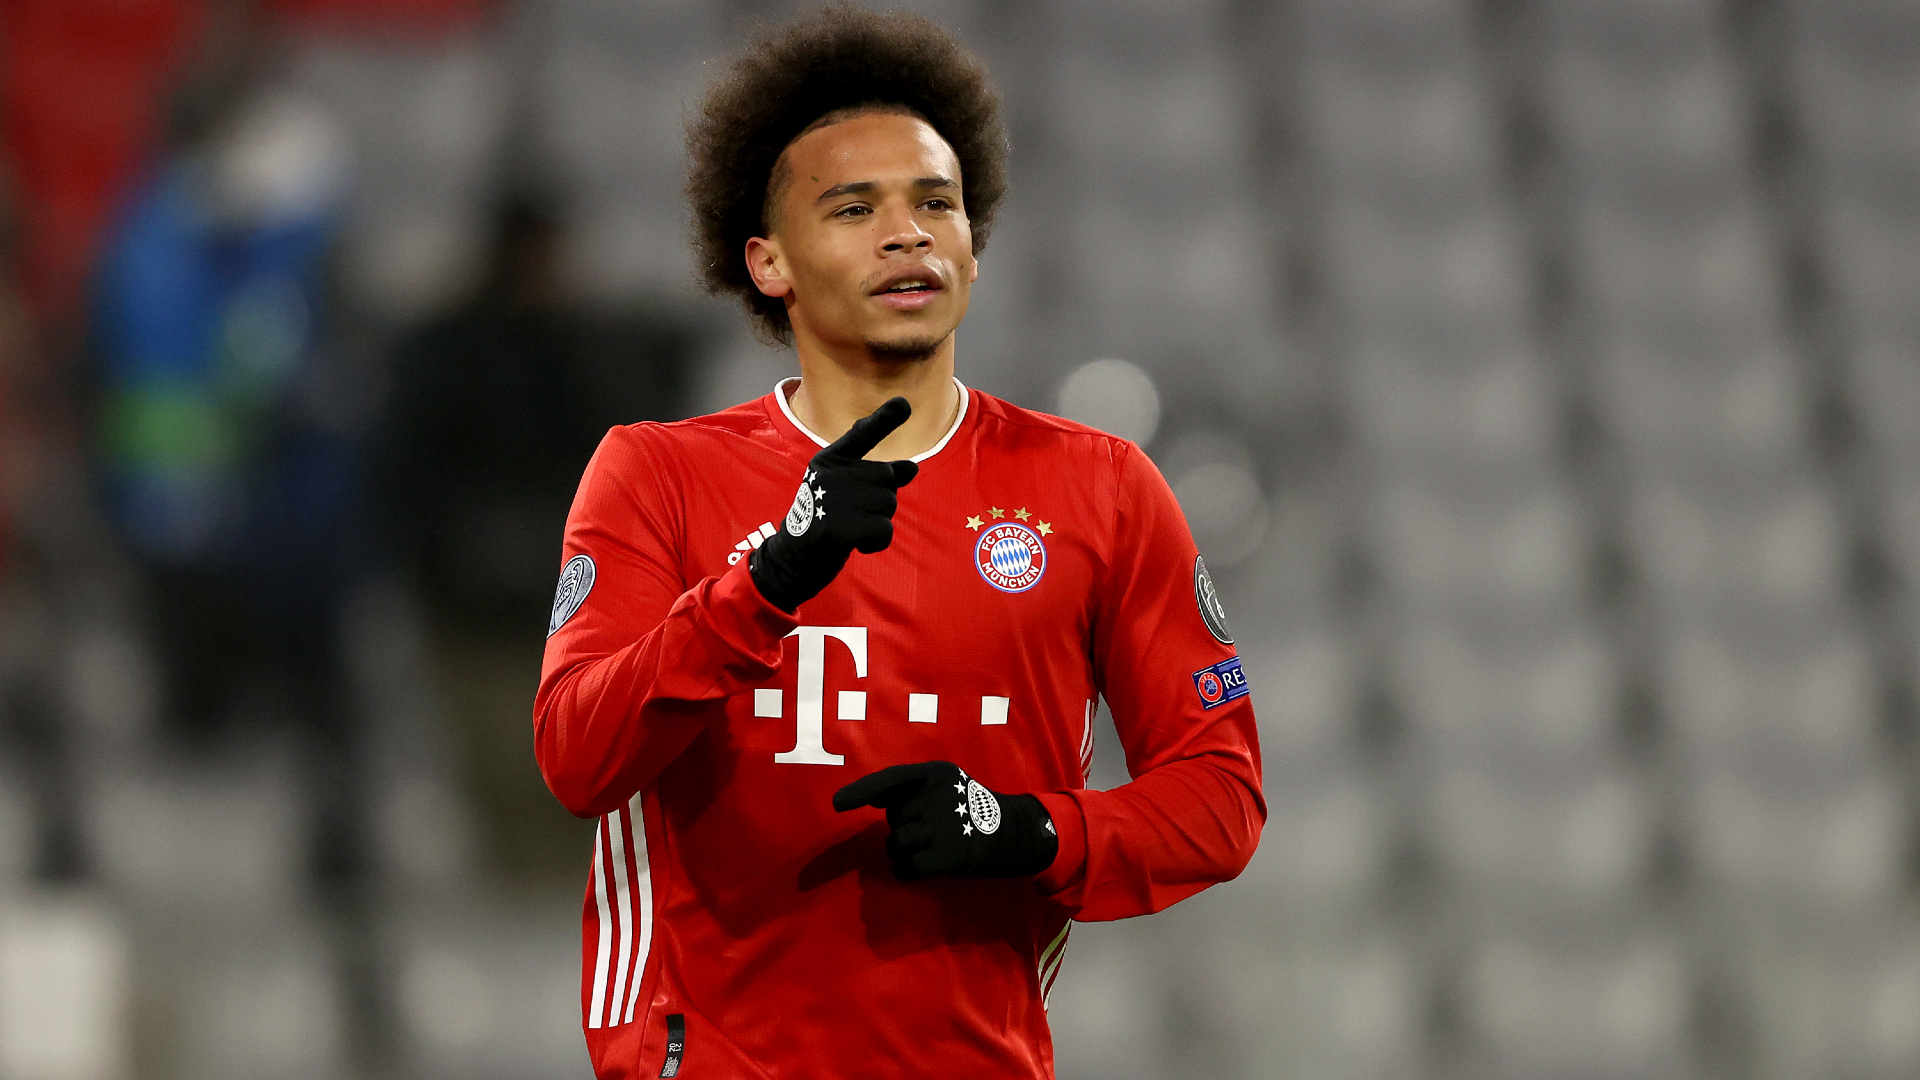 Sane admits 'surprise' at being subbed sub but feels 'the full trust' of Bayern Munich team and manager